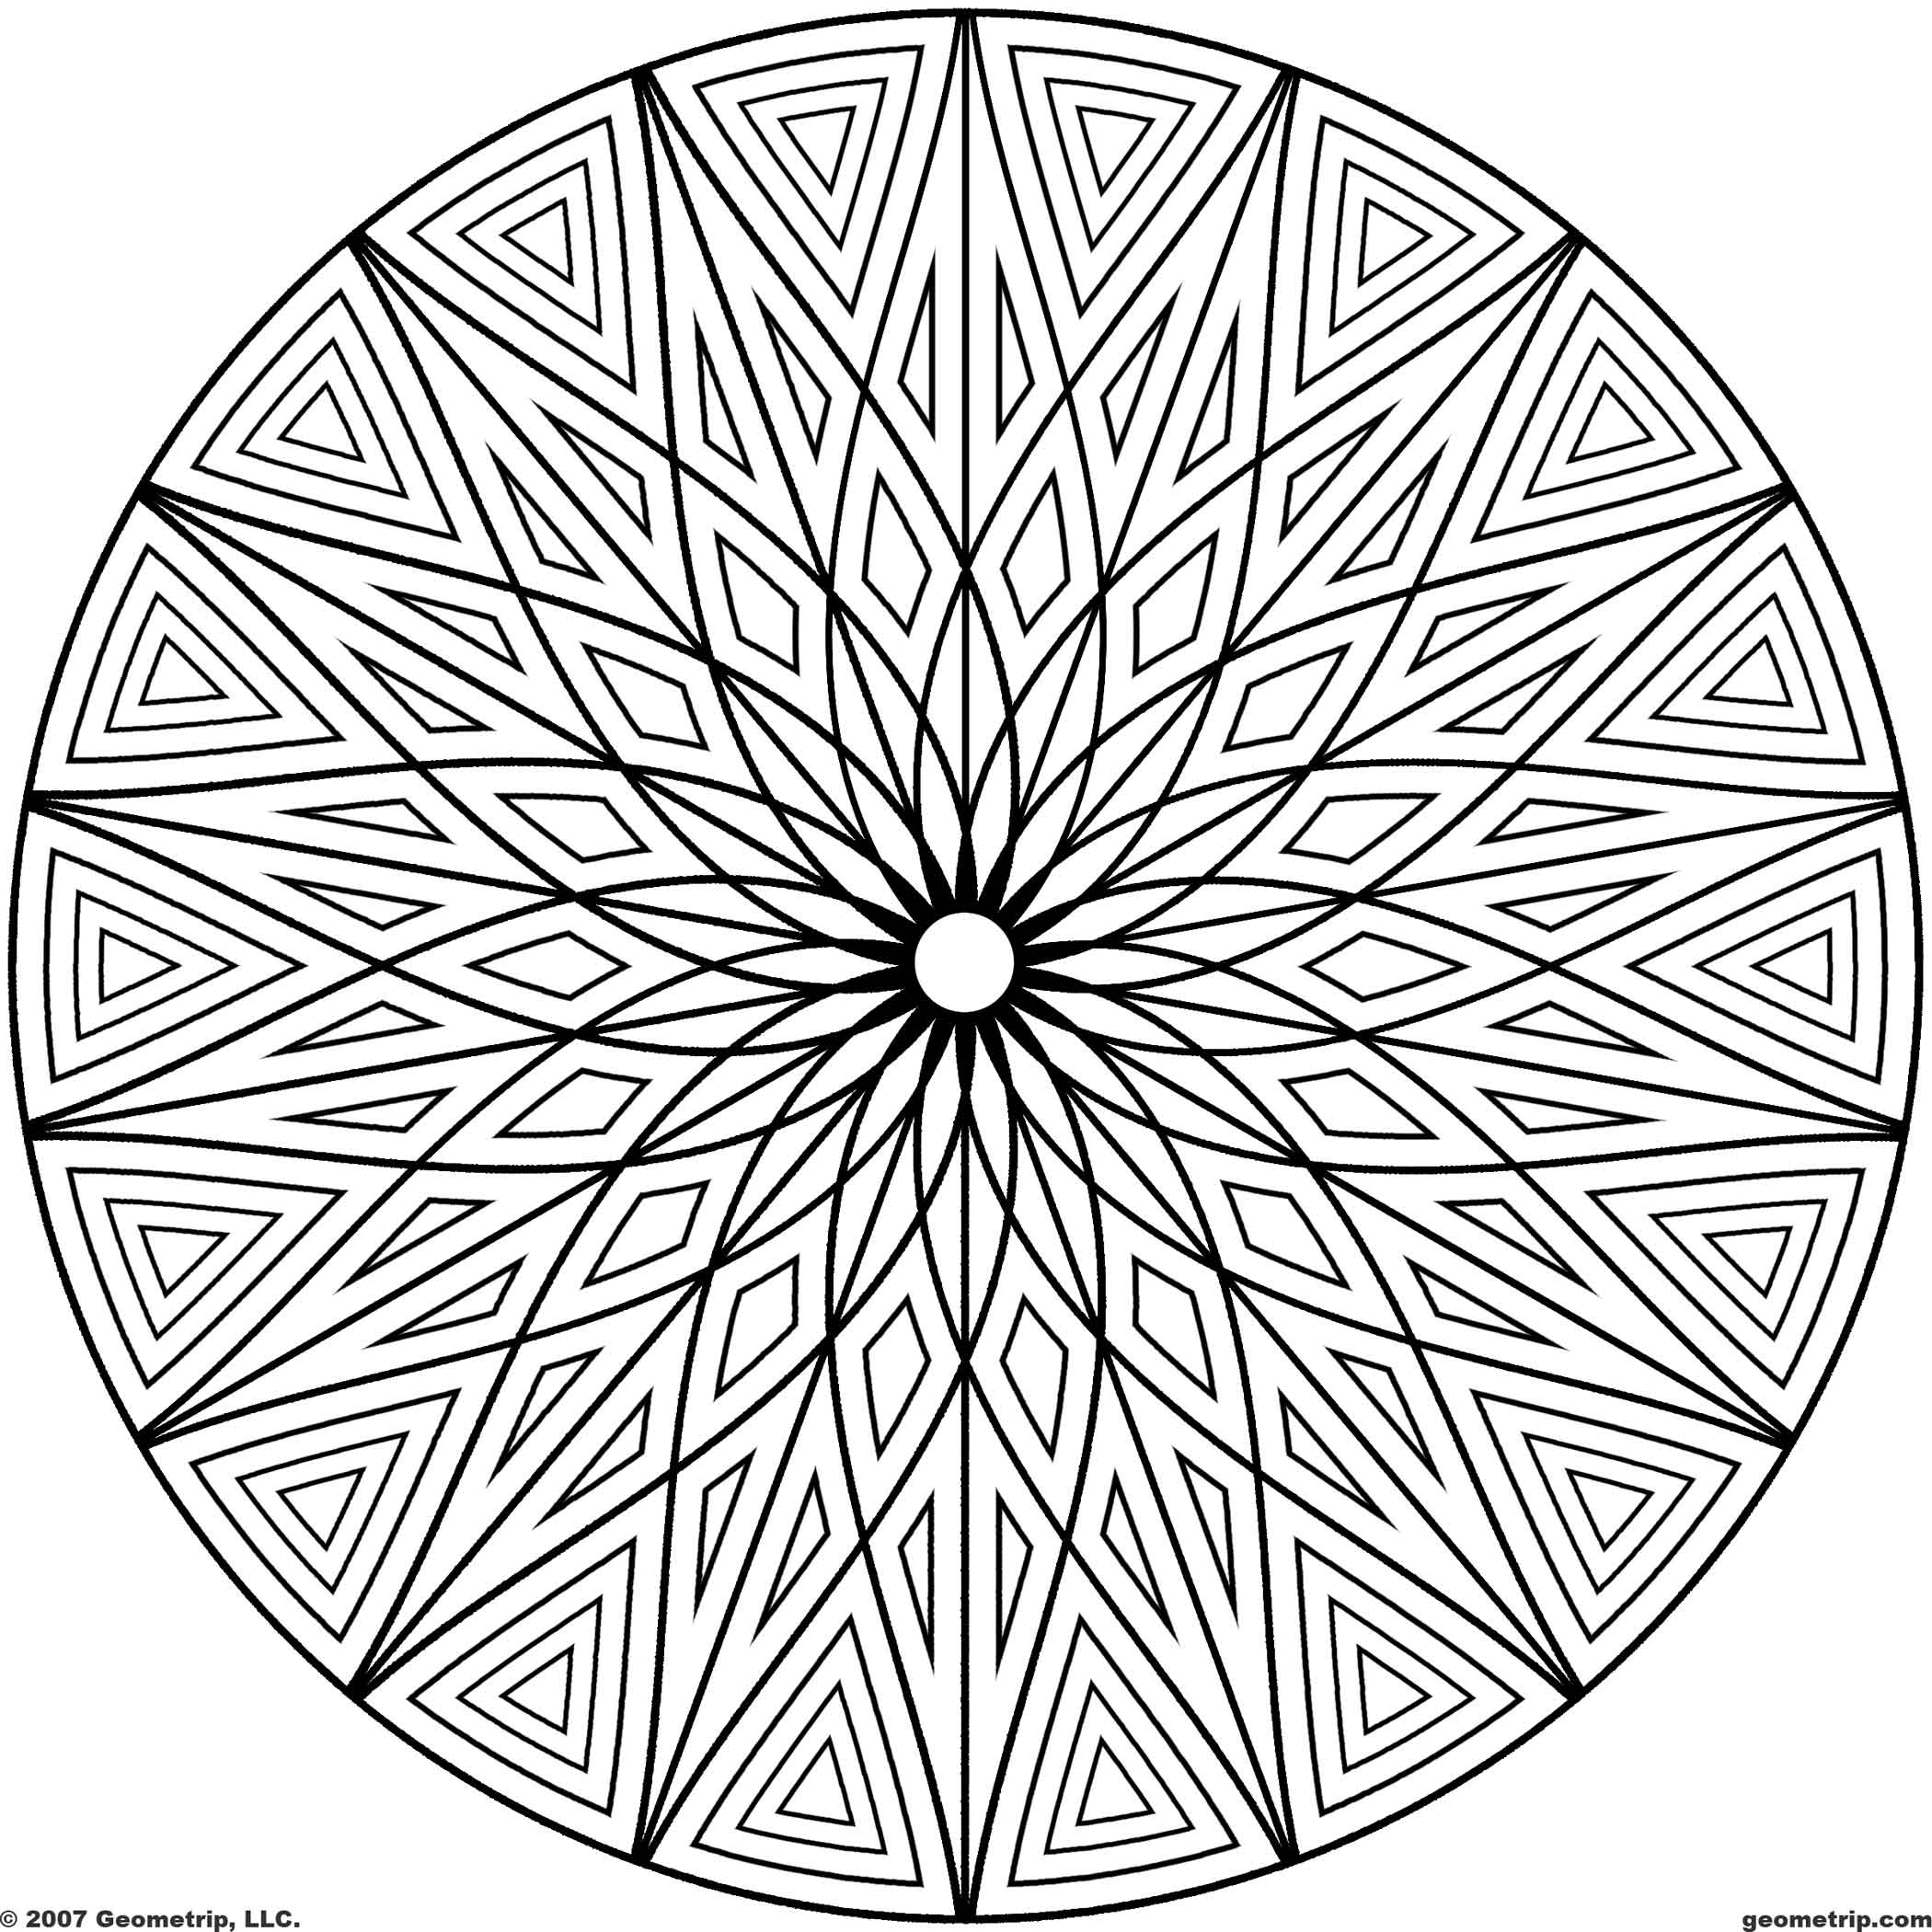 design pictures to color 16 cool coloring pages of designs images cool geometric pictures to color design